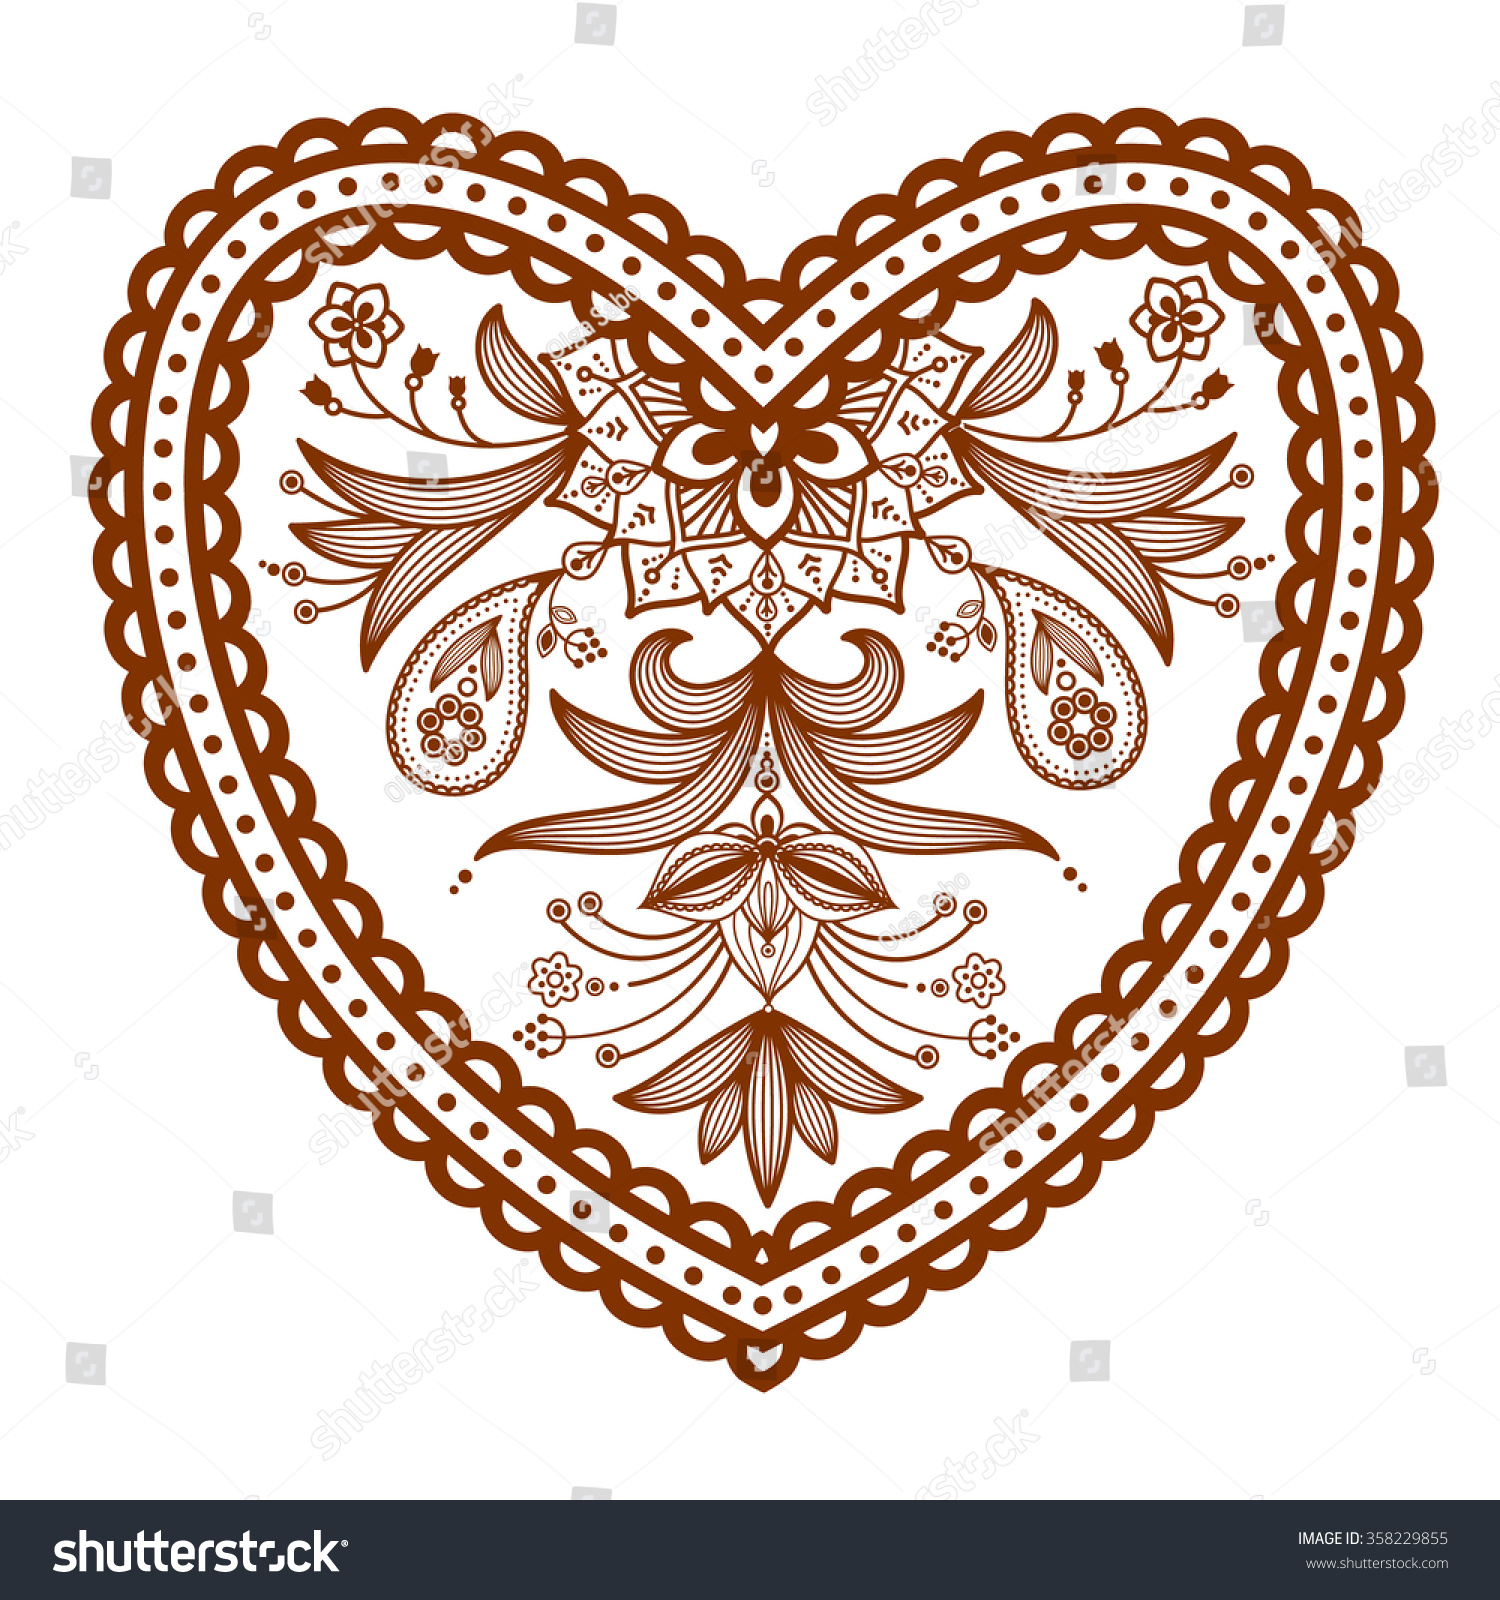 Heart Henna Tattoos: Decorated Heart Henna Tattoo Mehndi Style Heart Stock